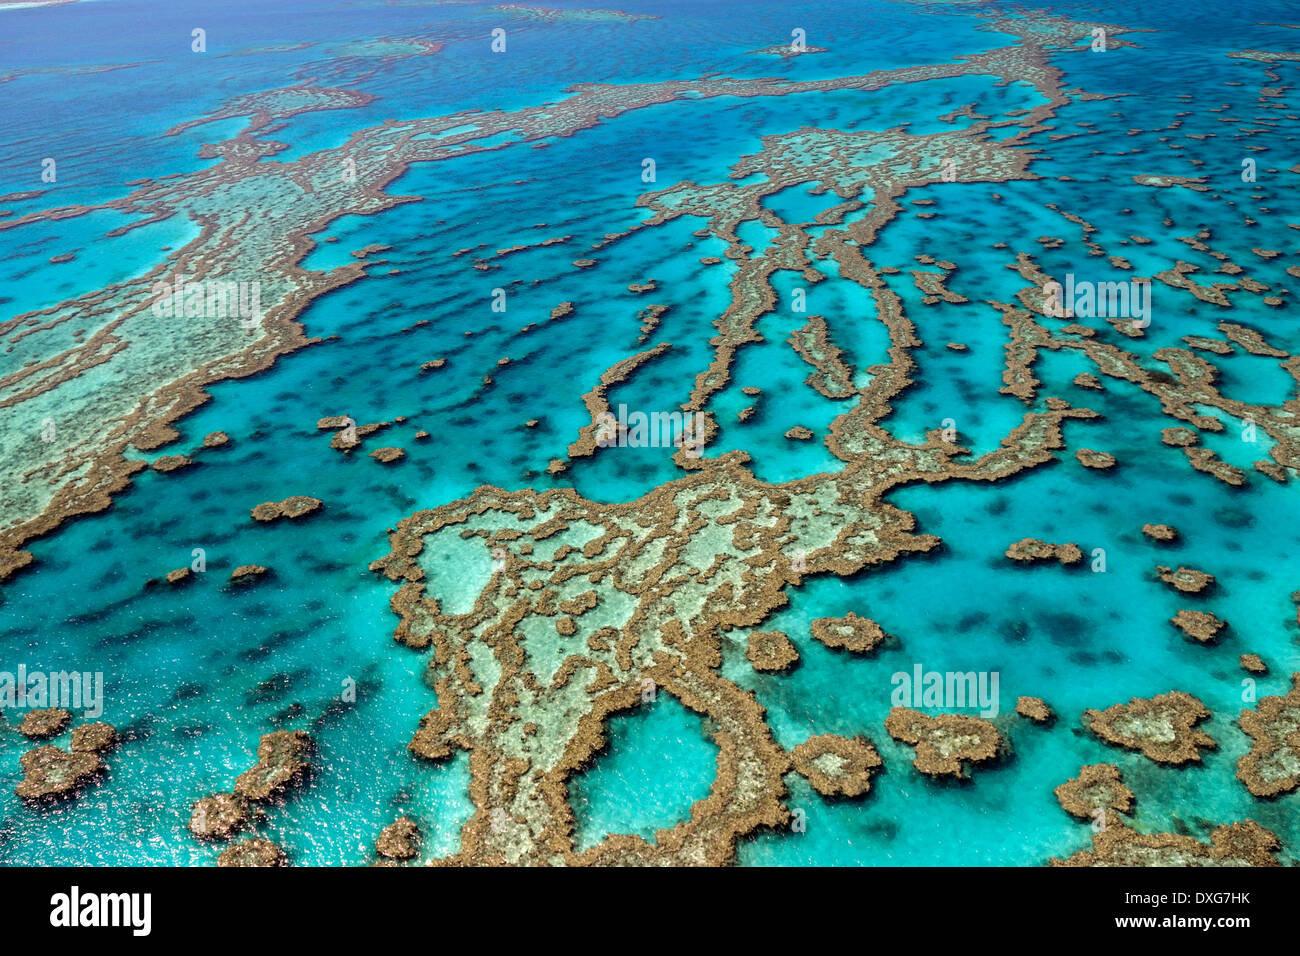 Reefs and atolls, Great Barrier Reef, Queensland, Australia - Stock Image